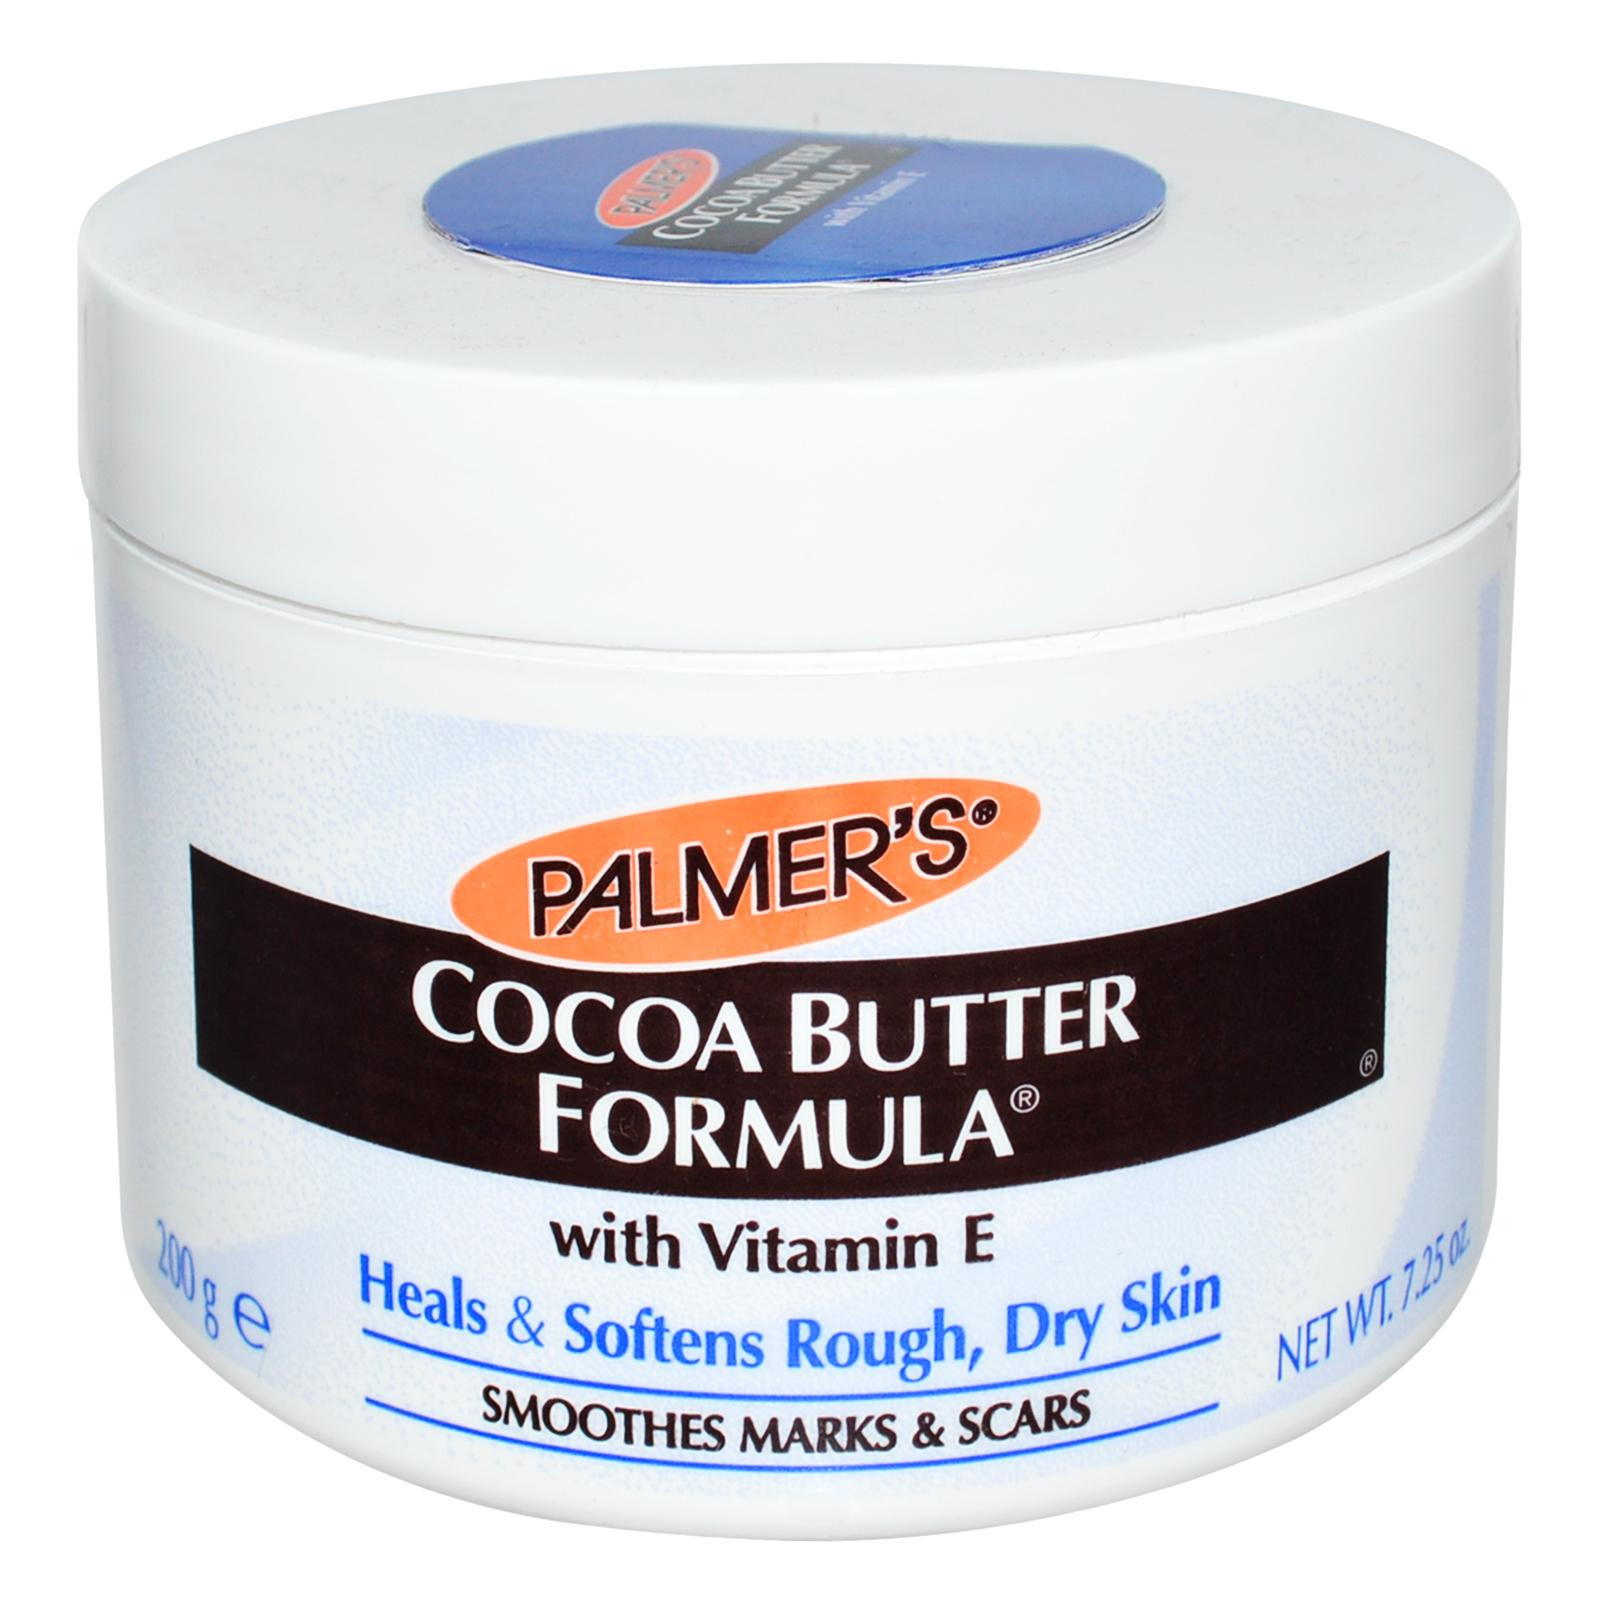 Is cocoa butter formula good for face